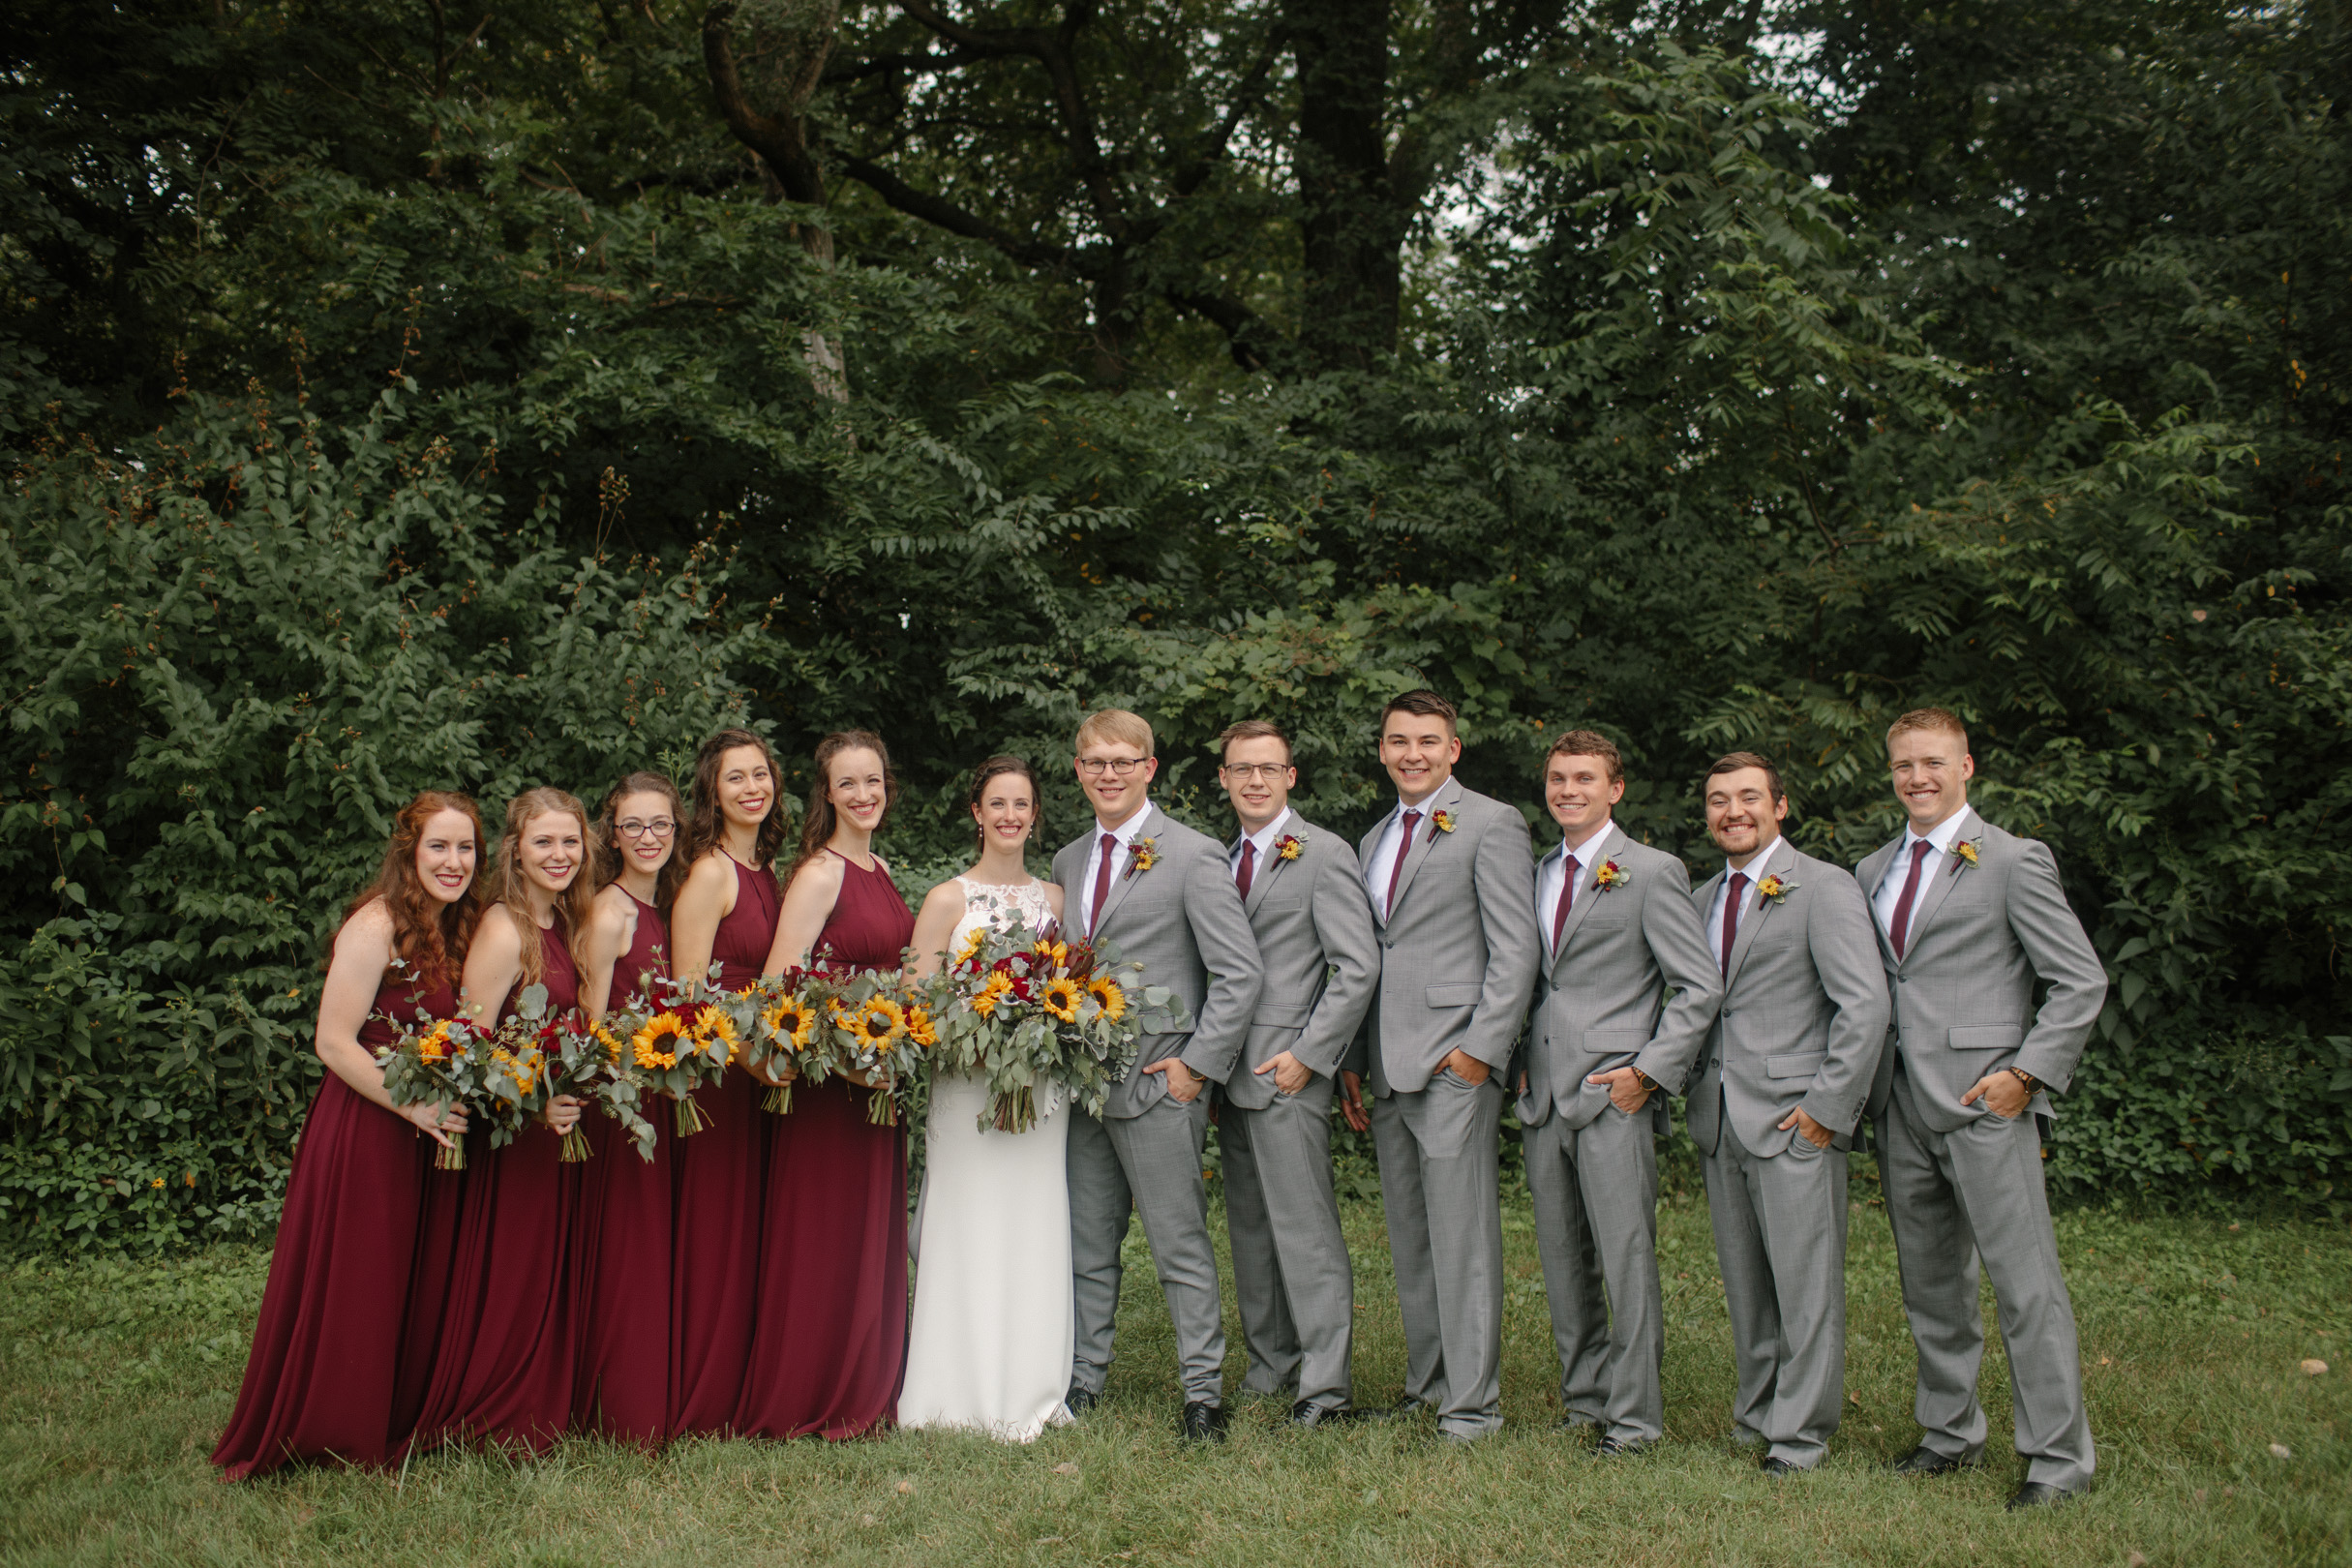 full bridal party at the chateau wedding venue des moines winery